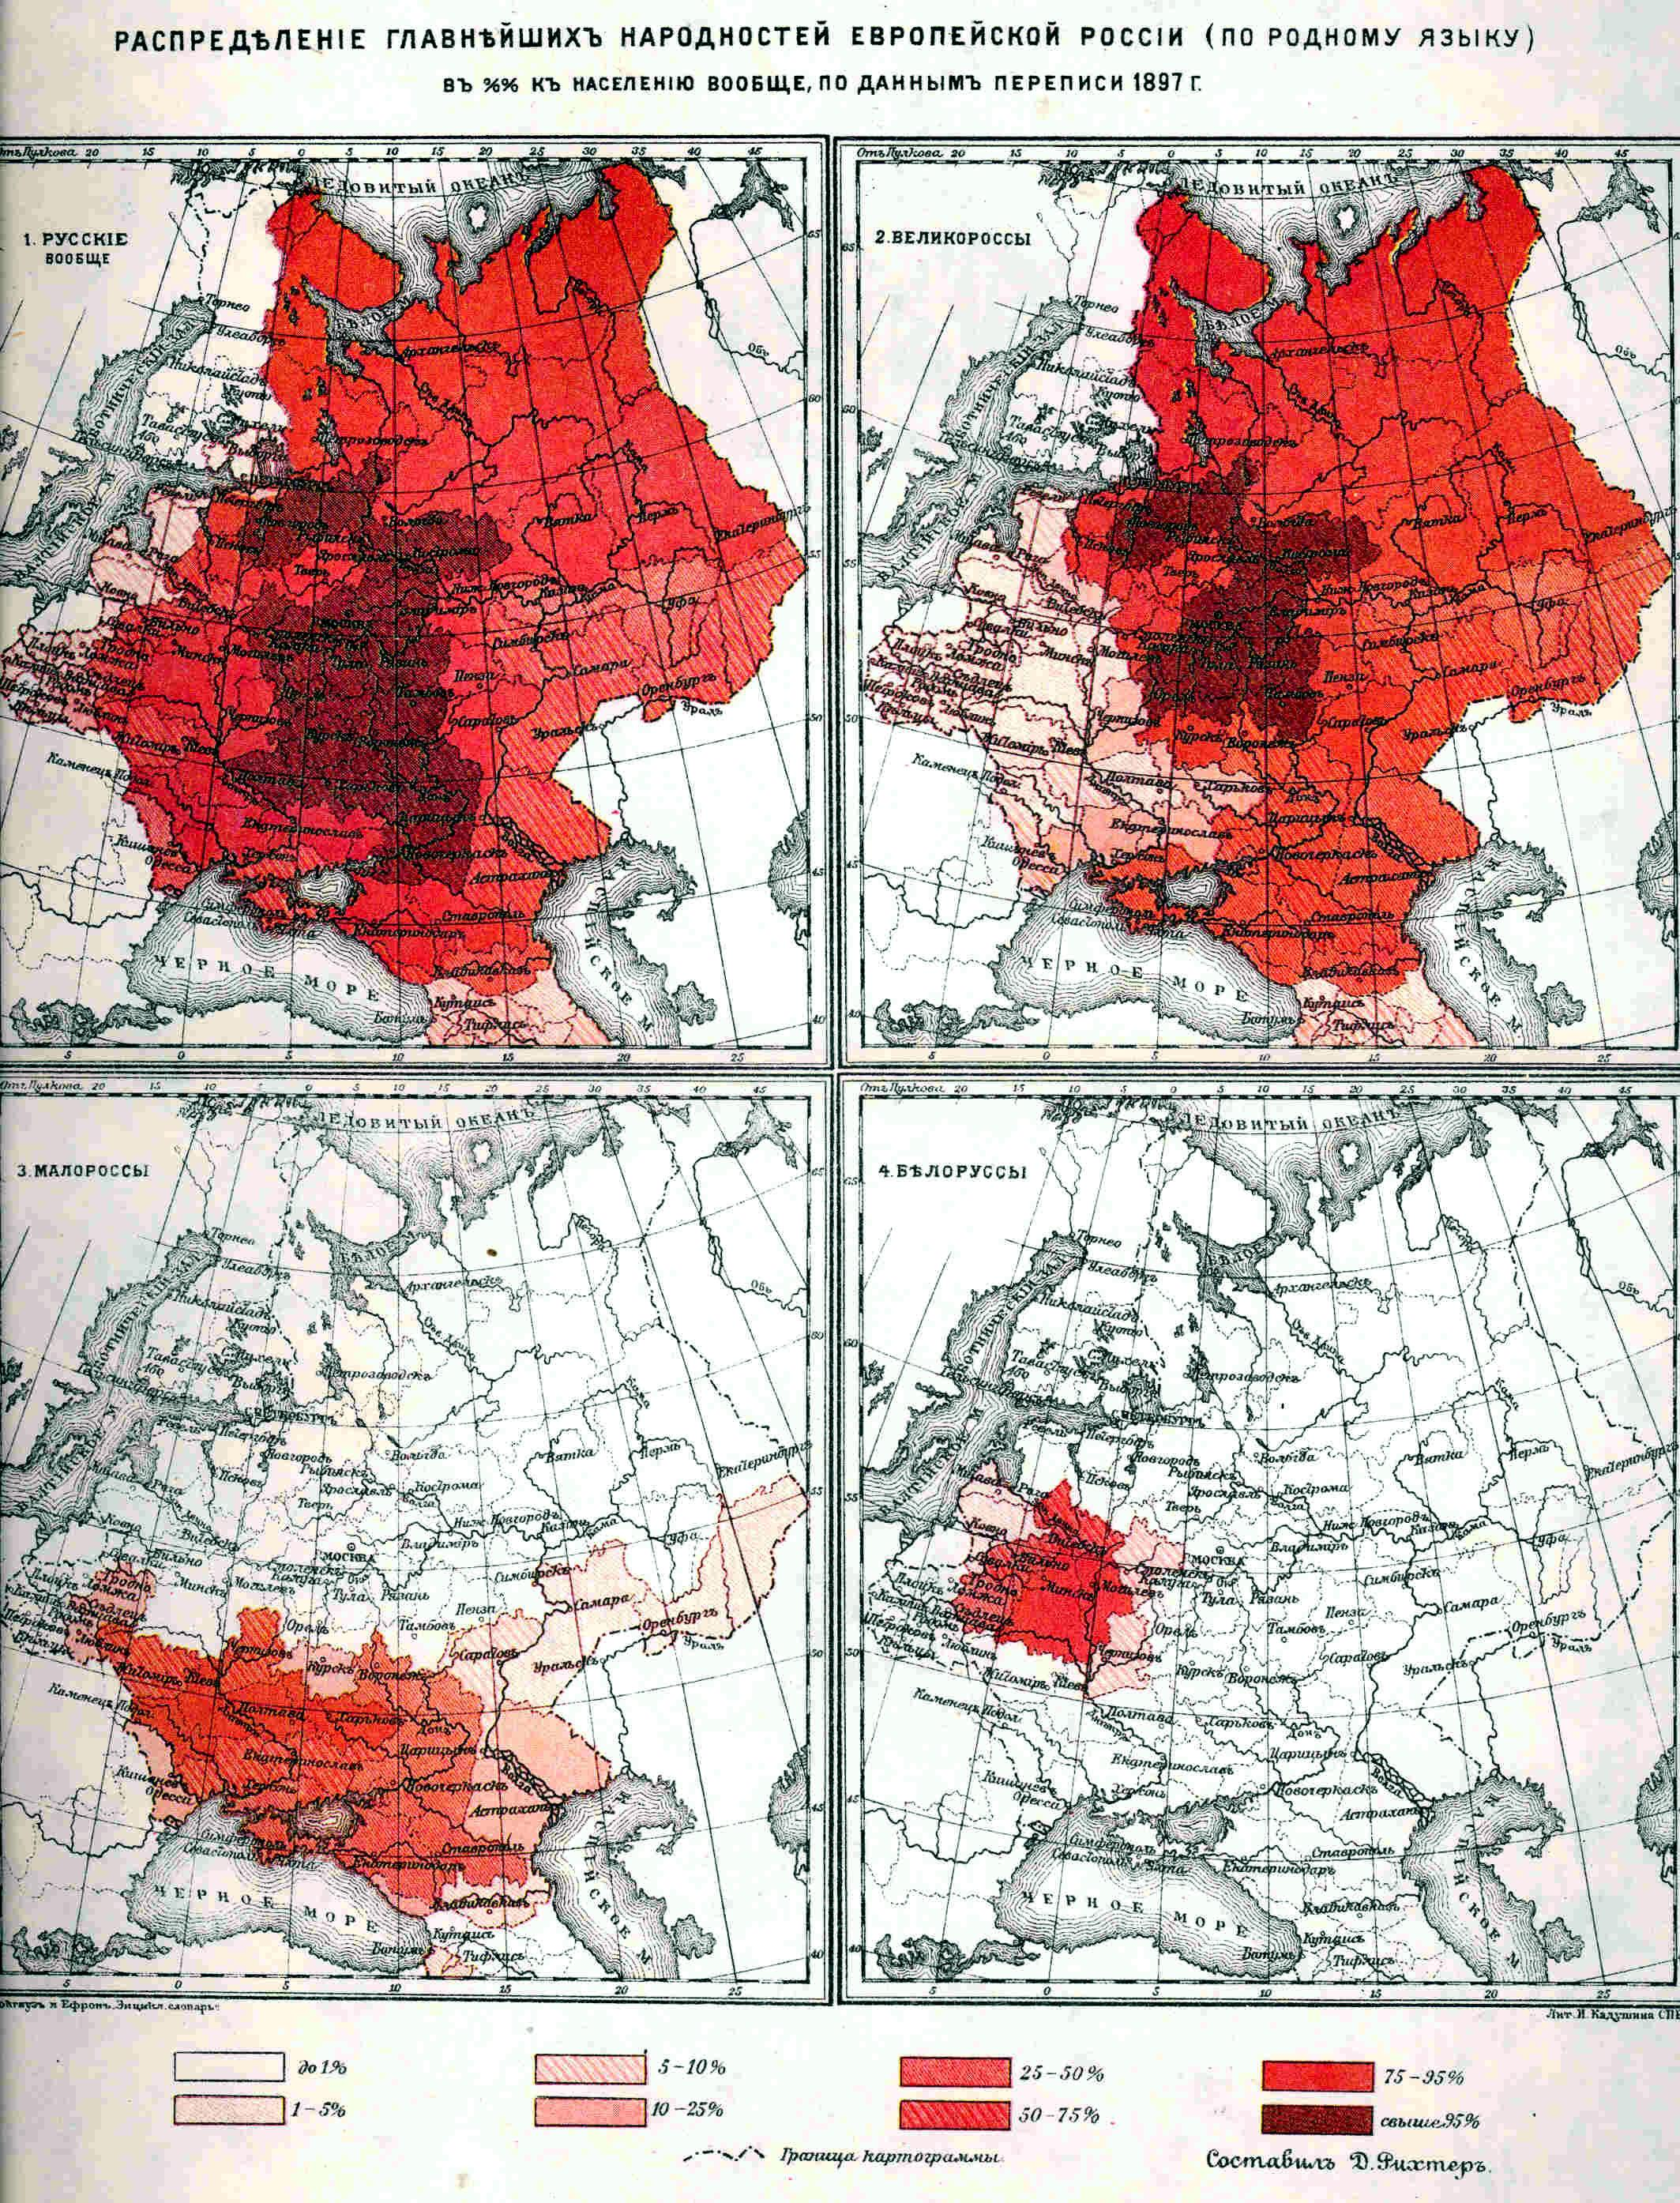 Ethnic_distribution_census-1897.jpg